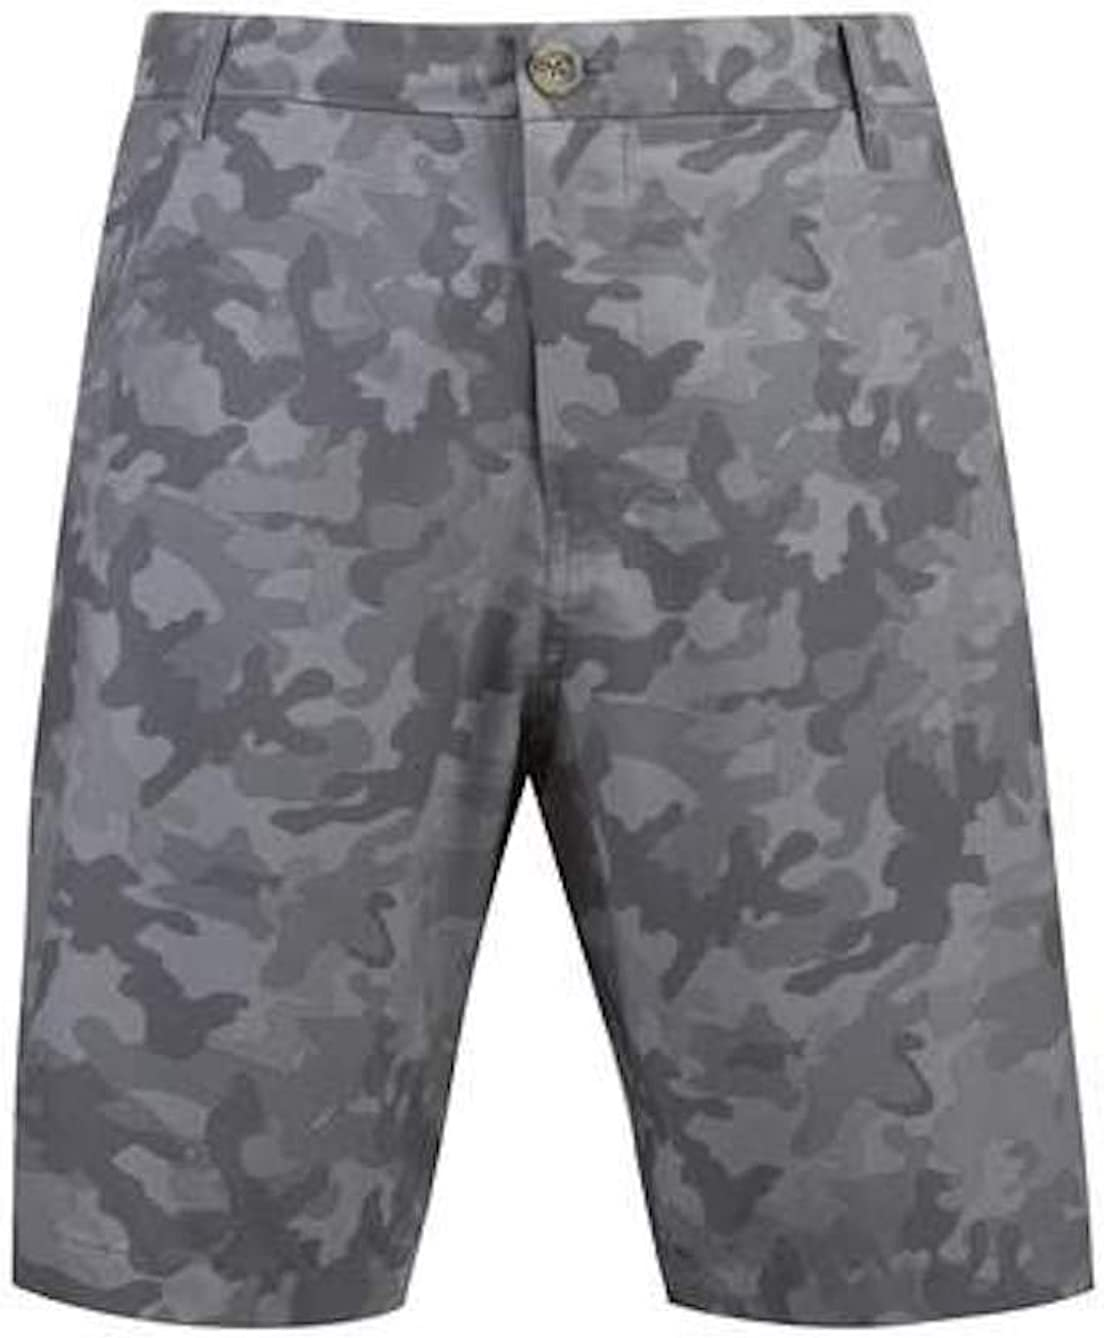 Free Country Mens Camo Board Short